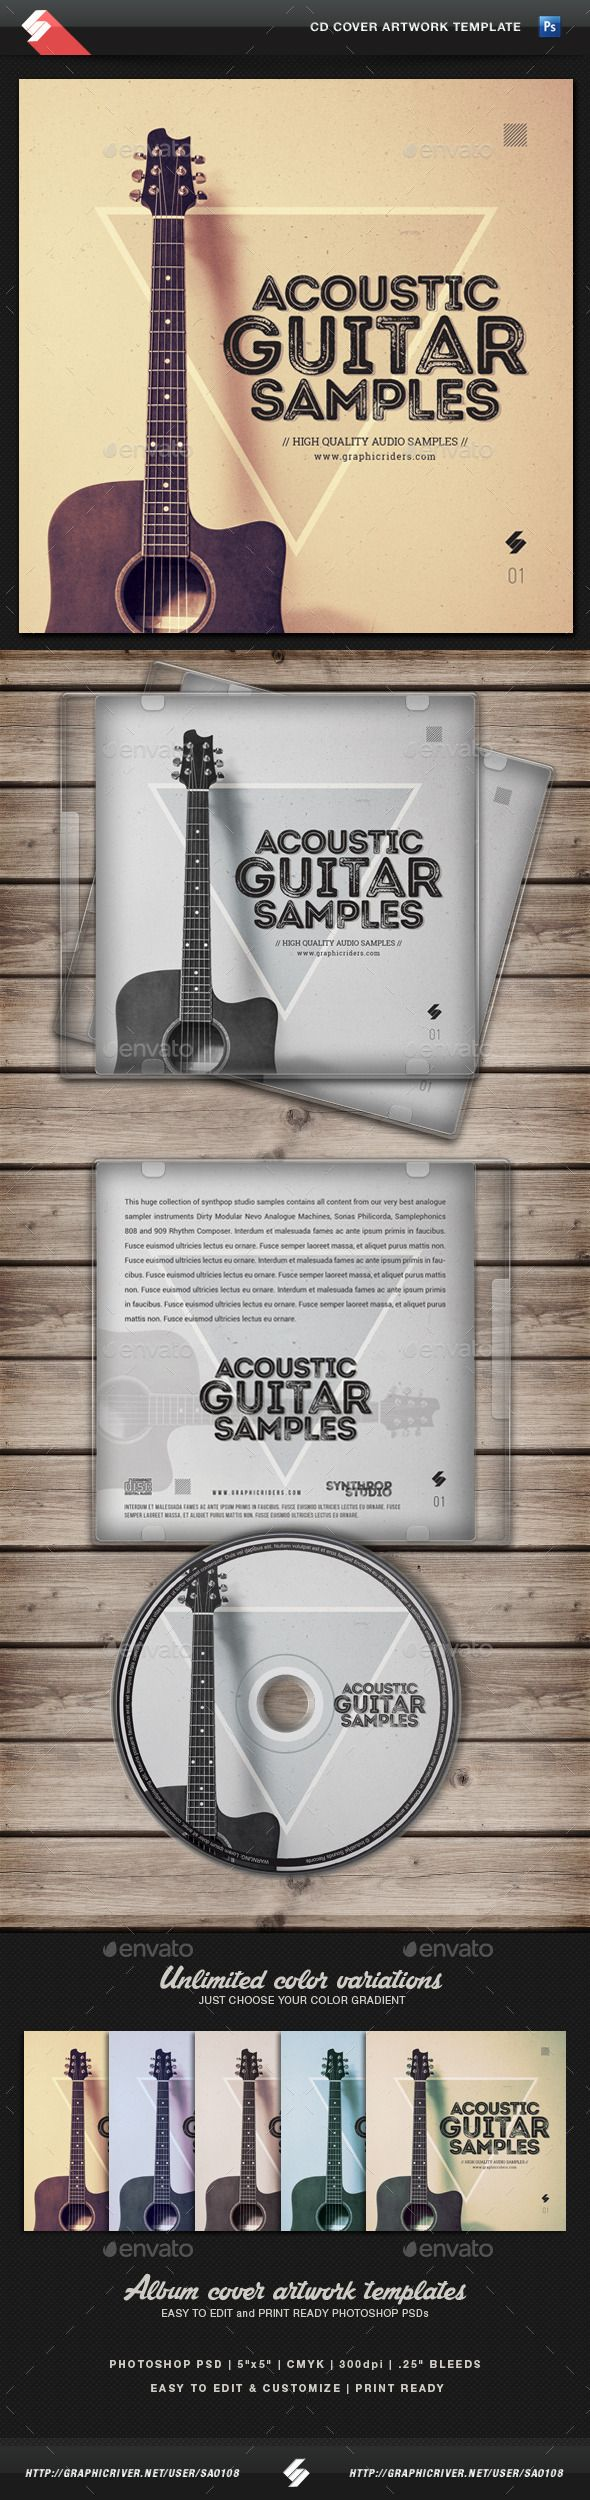 Acoustic Guitar Samples - CD Cover Template PSD. Download here: http://graphicriver.net/item/acoustic-guitar-samples-cd-cover-template/13196826?ref=ksioks